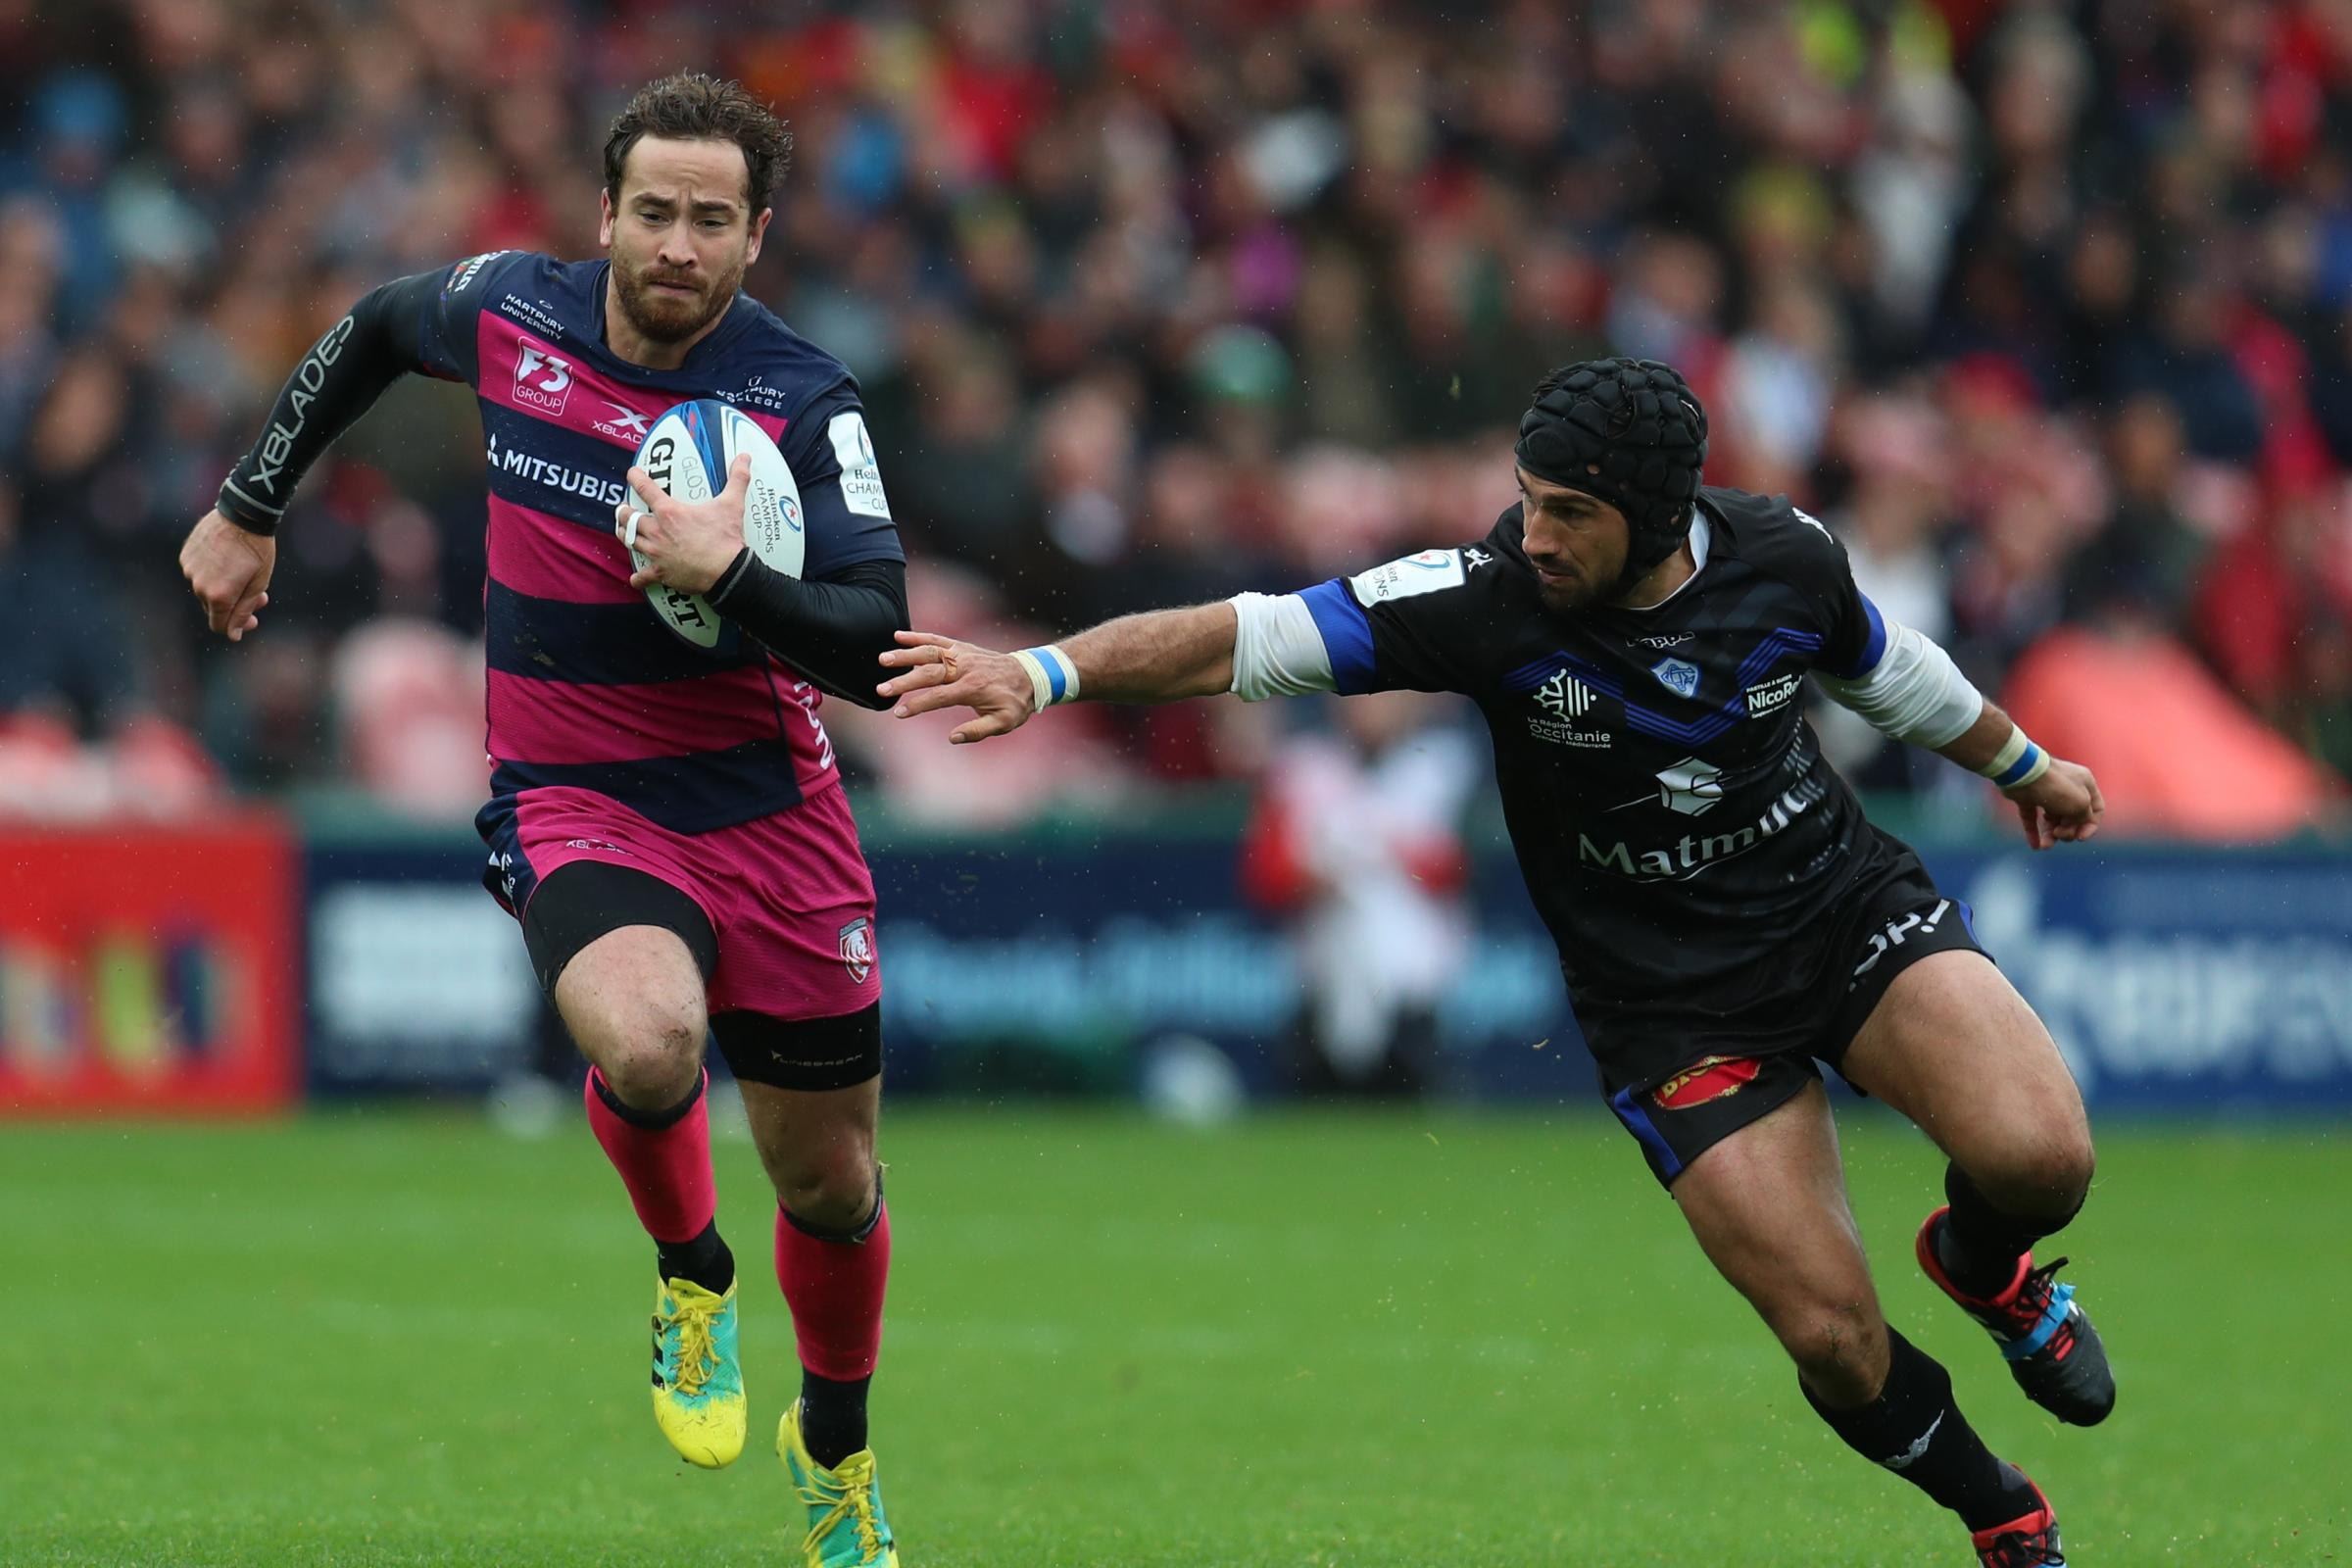 Danny Cipriani has been left out of England's autumn series squad despite an impressive start to the season for Gloucester.